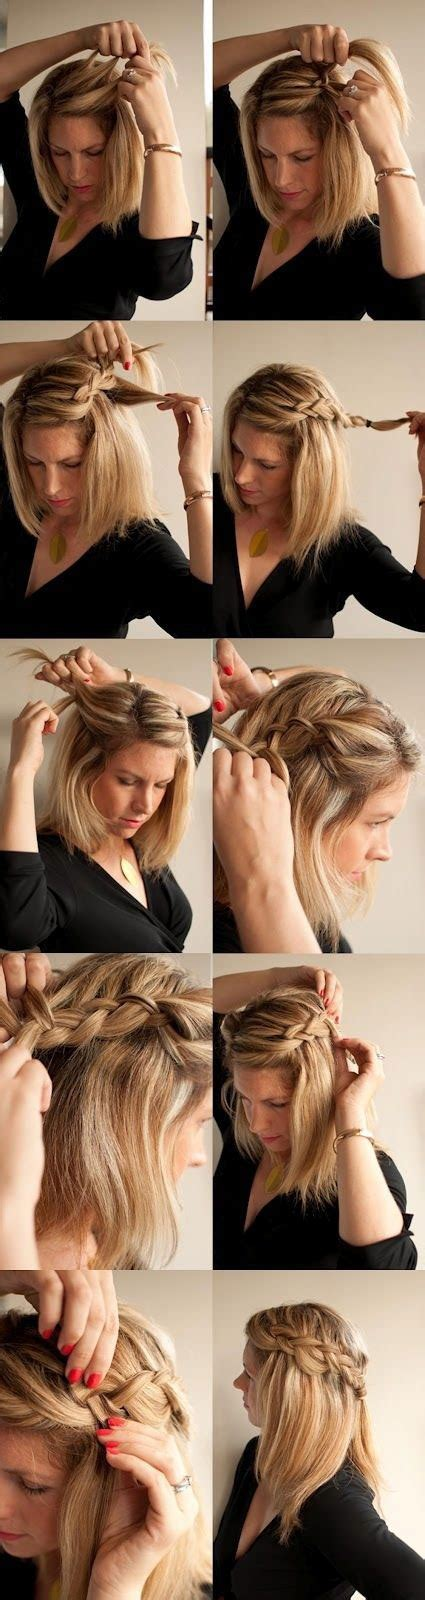 easy hairstyles for shoulder length hair for school 15 and easy hairstyle tutorials for medium length hair easy hairstyles tutorials medium